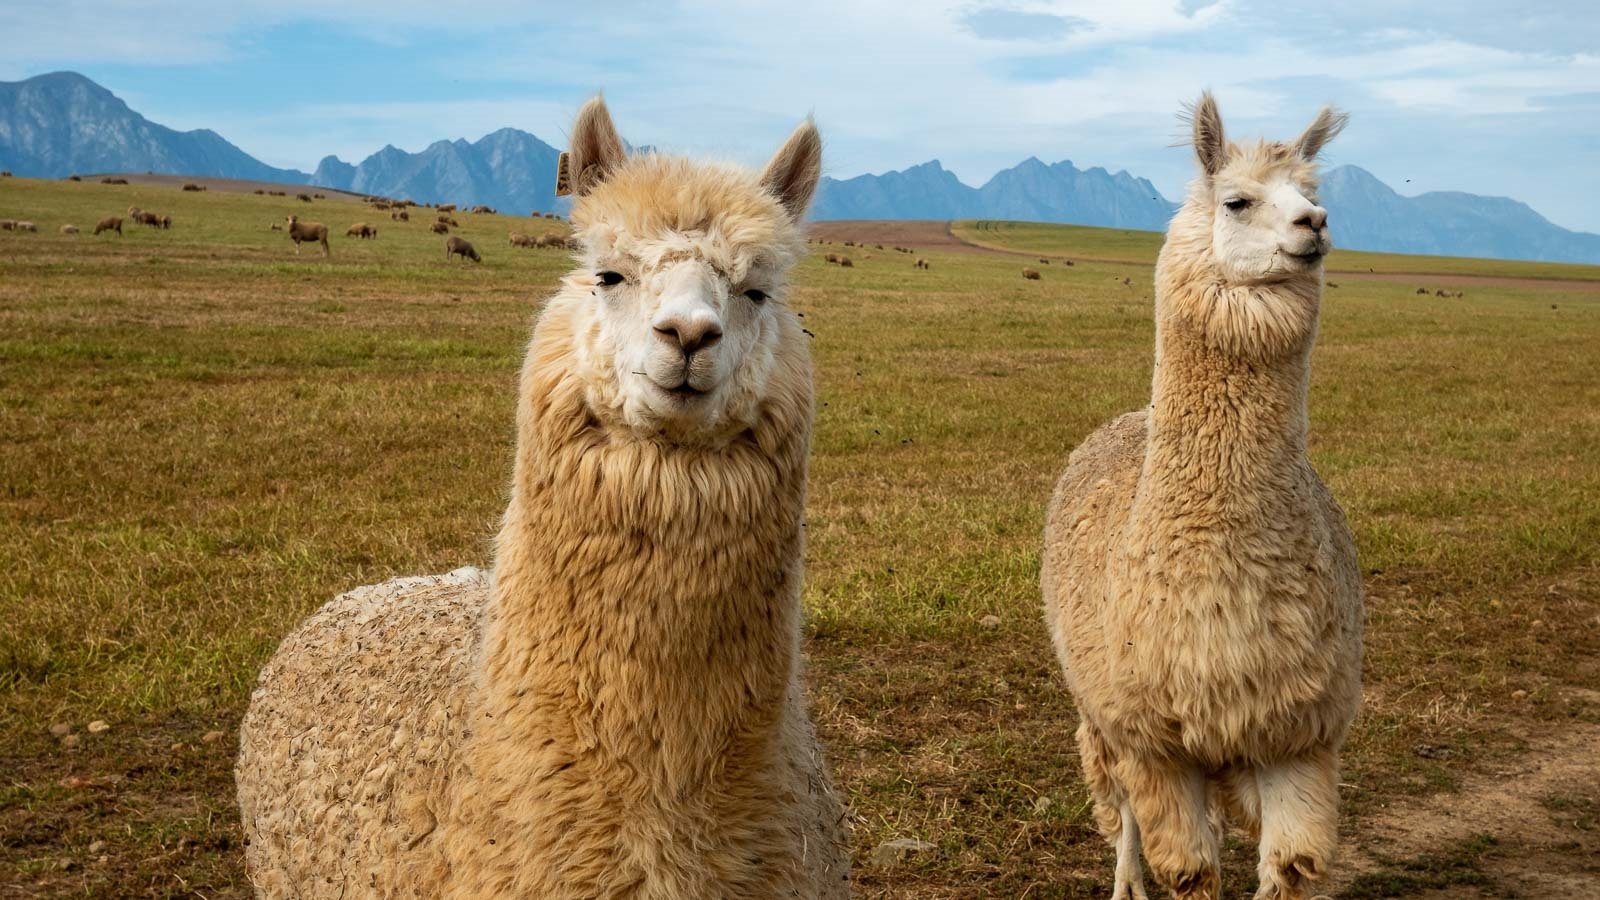 Llamas and other camelid mammals naturally produce tiny nanobodies against infections. Scientists are testing whether these small, stable antibodies might be an effective treatment against COVID-19. (Image by Shutterstock/Roger de la Harpe.)